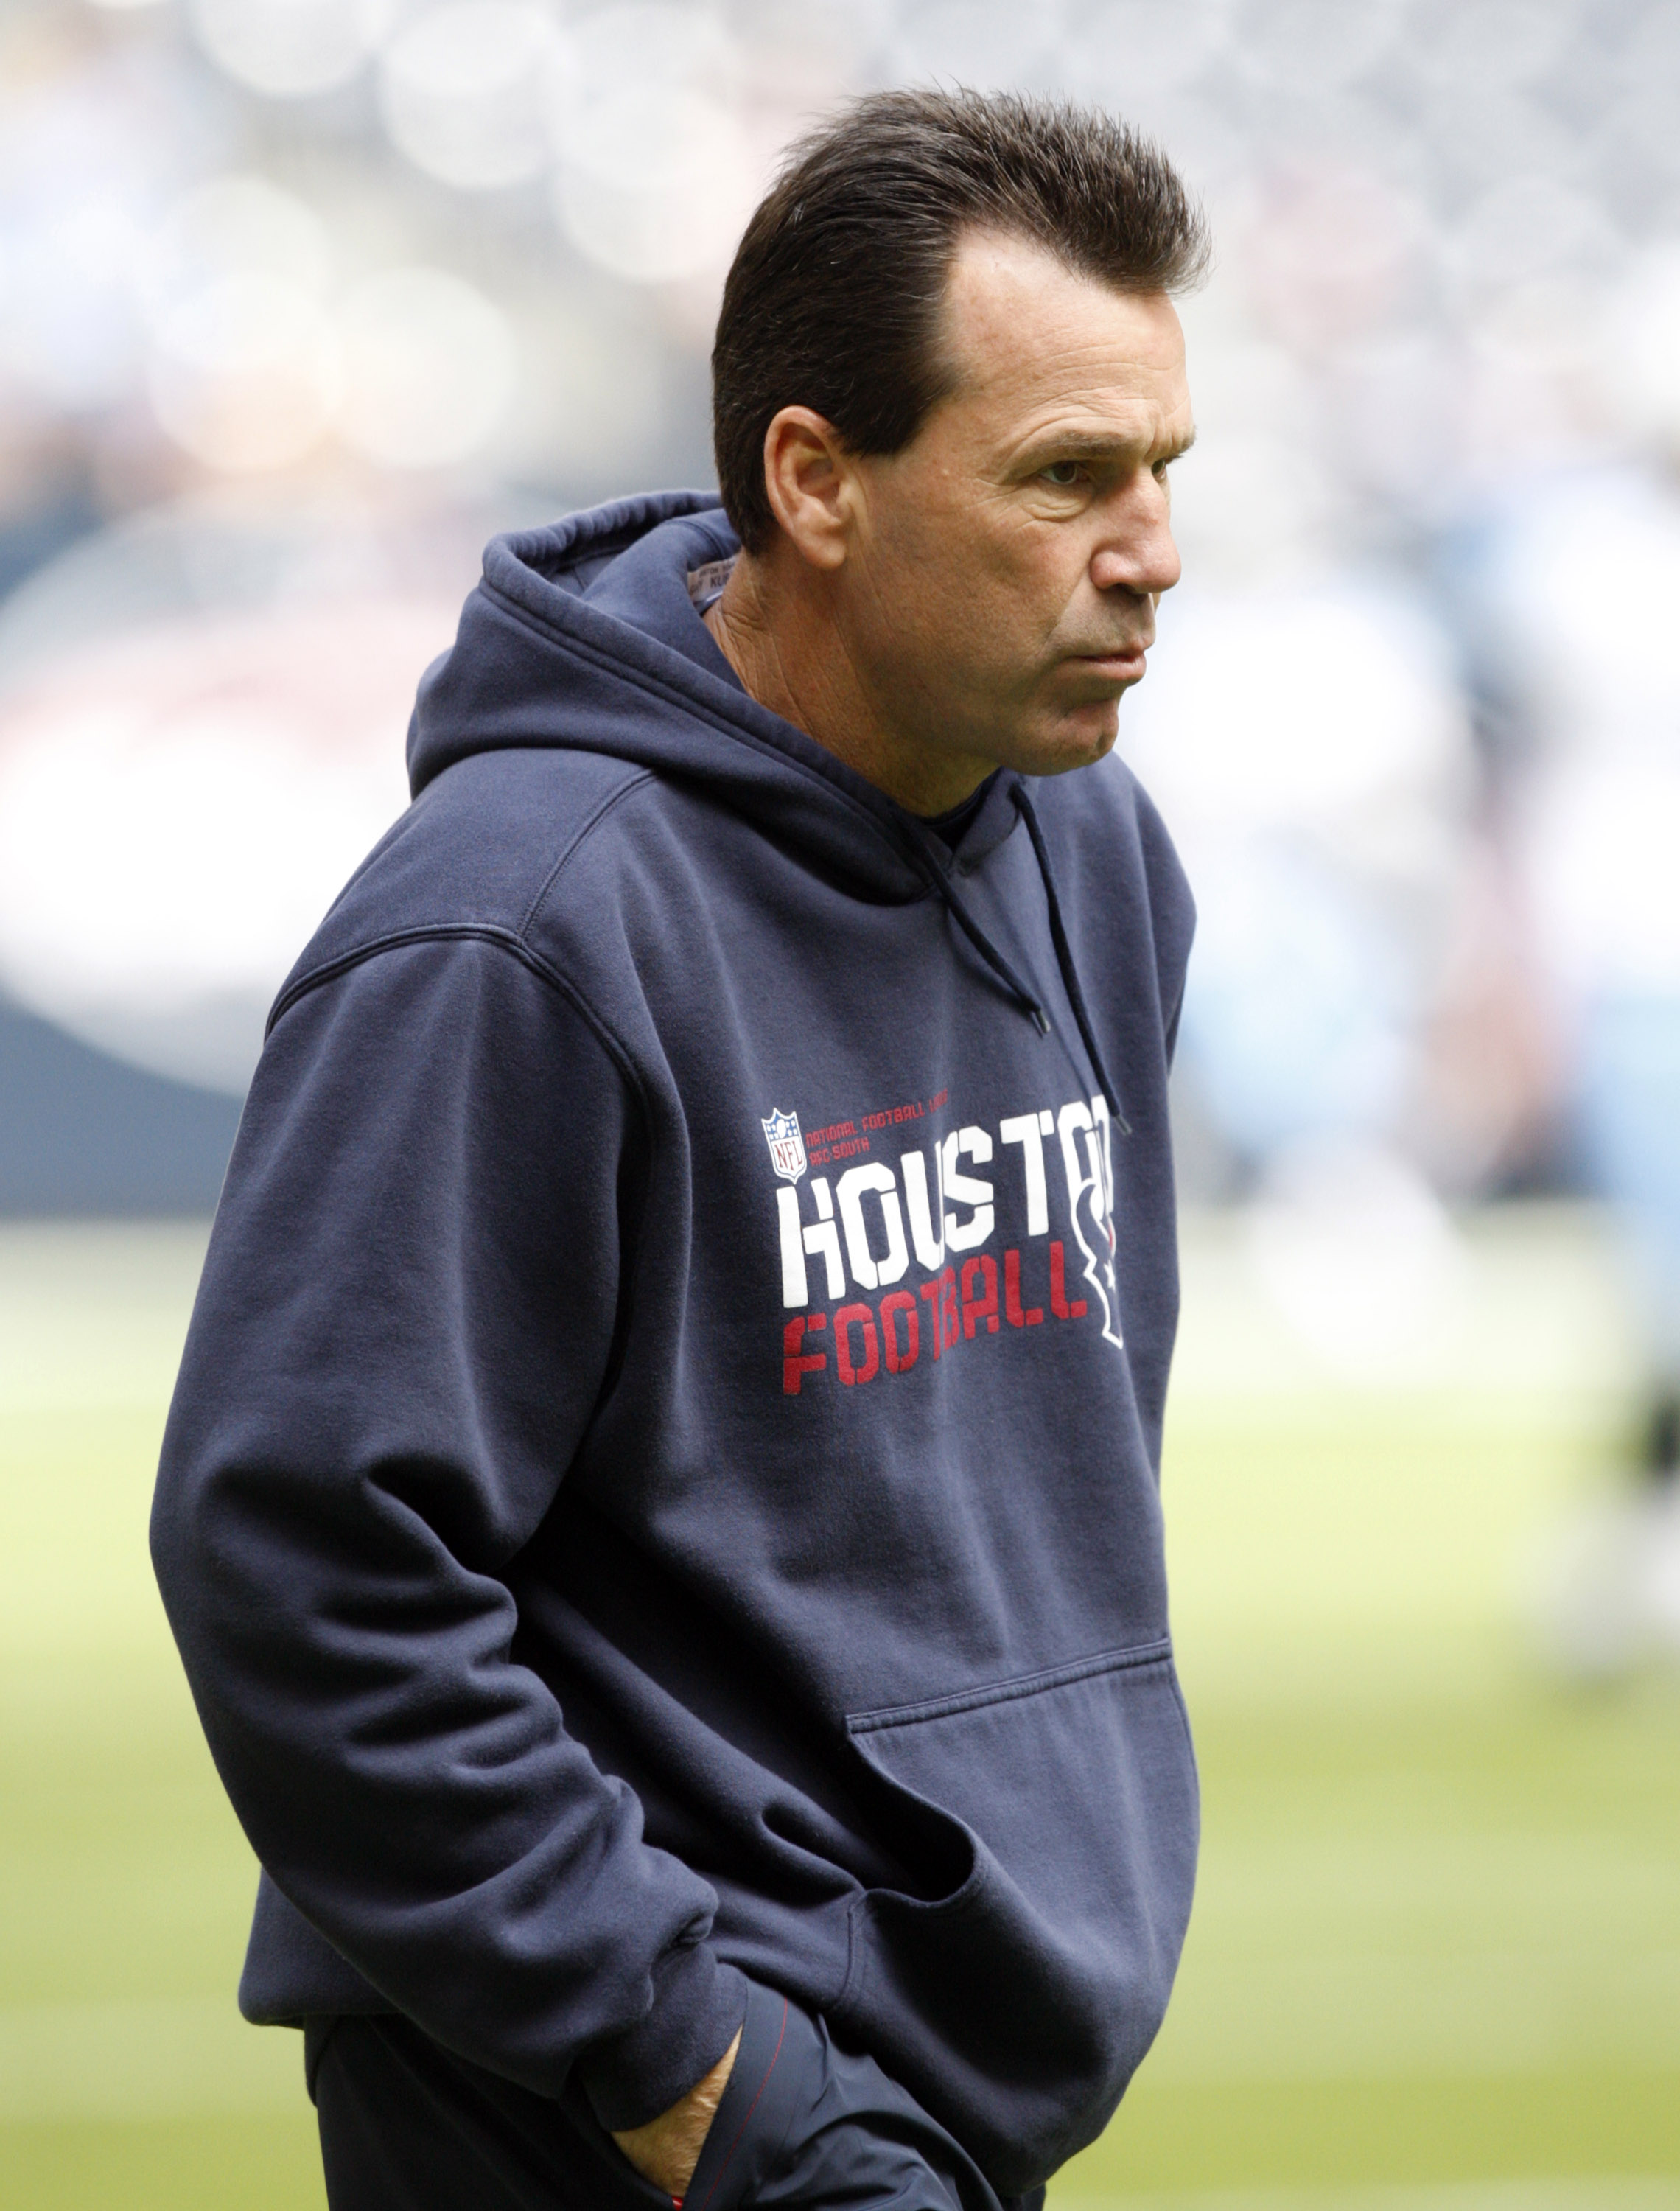 HOUSTON - NOVEMBER 28:  Head coach Gary Kubiak of the Houston Texans during pre-game warm ups before playing the Tennessee Titans at Reliant Stadium on November 28, 2010 in Houston, Texas.  (Photo by Bob Levey/Getty Images)